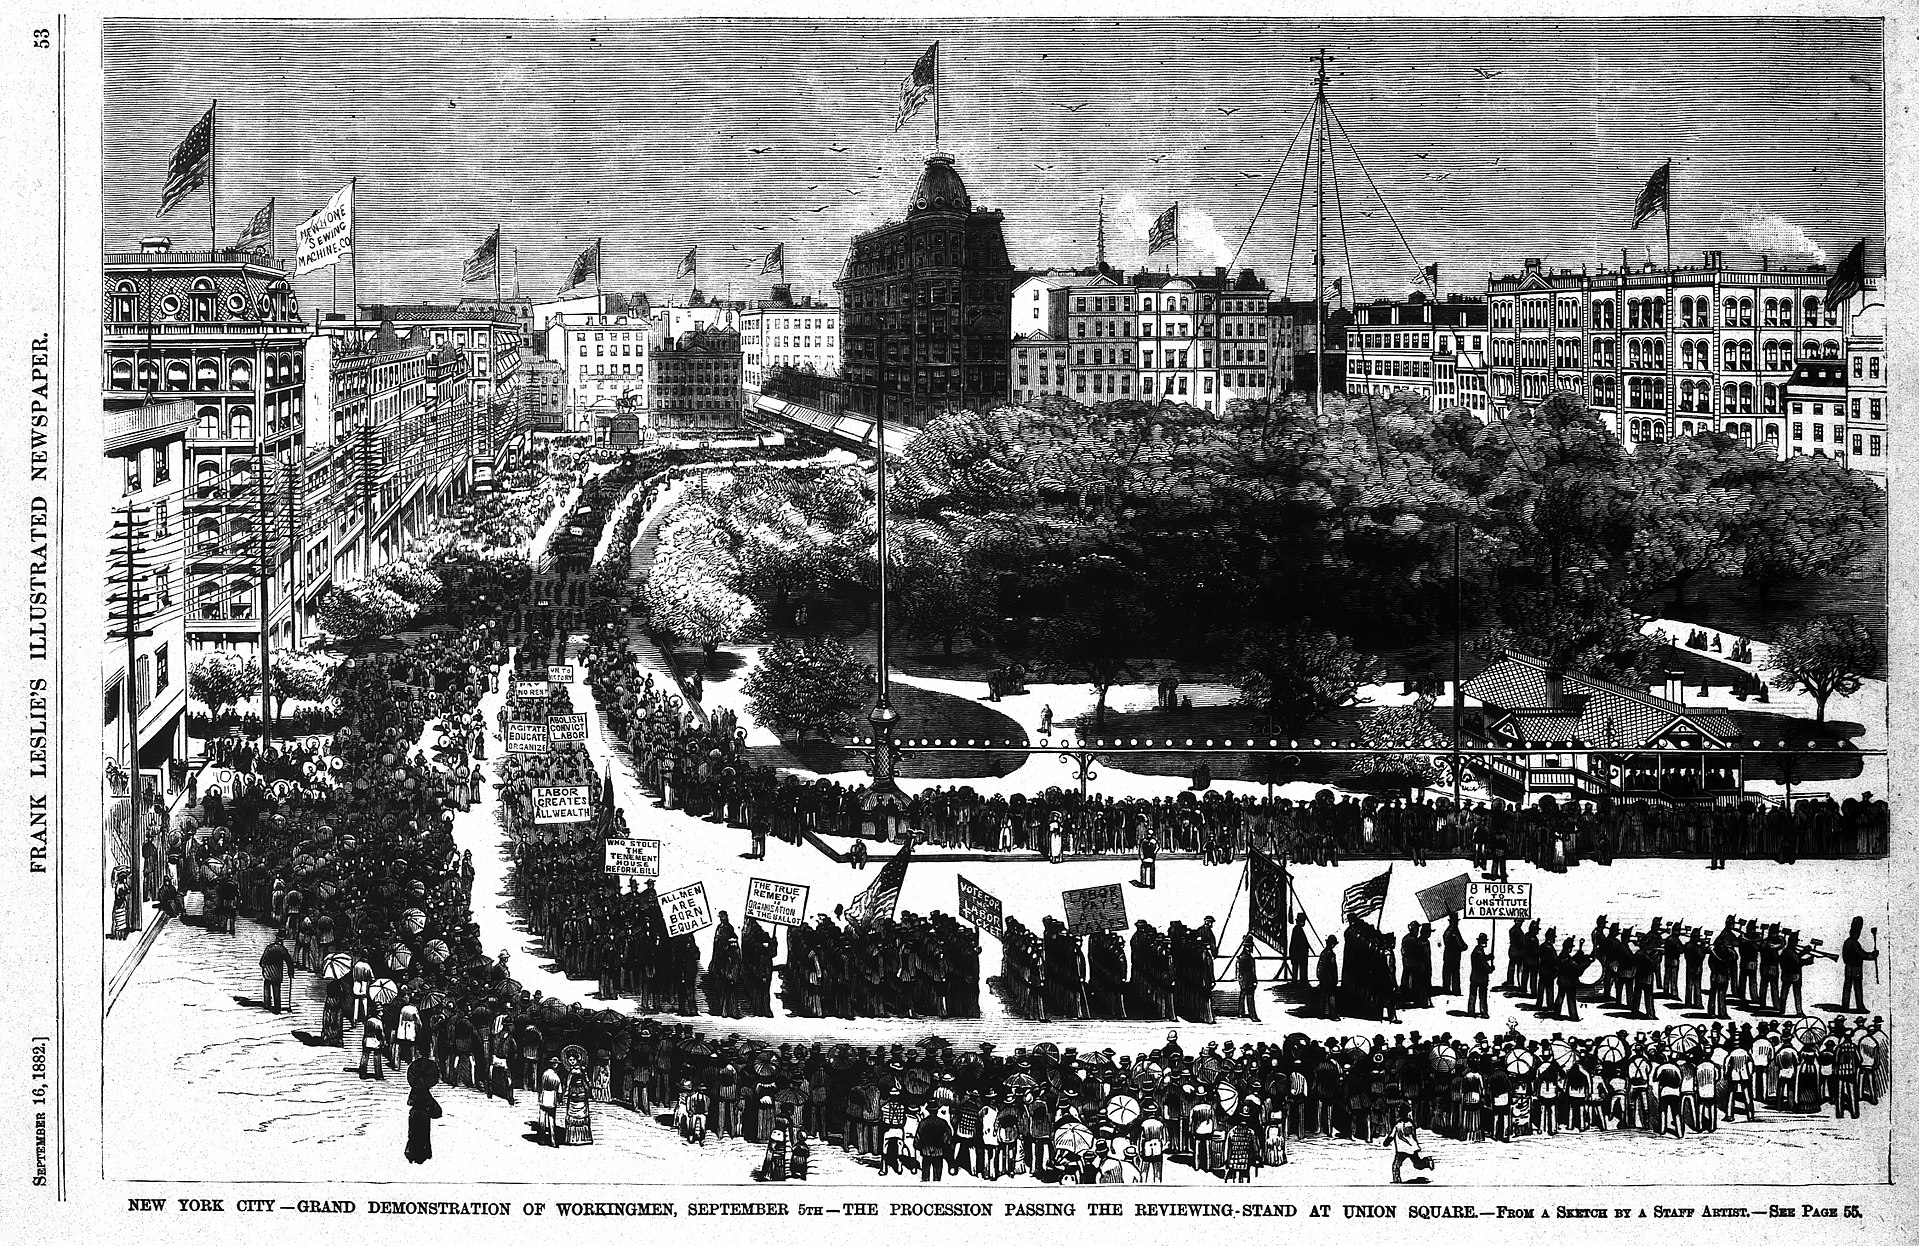 the history of the american labor movement in the united states United states history ii module 2: capital and labor search for: the labor movement lawrence textile strike, 1912 library of congress  and a vast industrial workforce in the last quarter of the nineteenth century sparked the rise of a vast american labor movement.